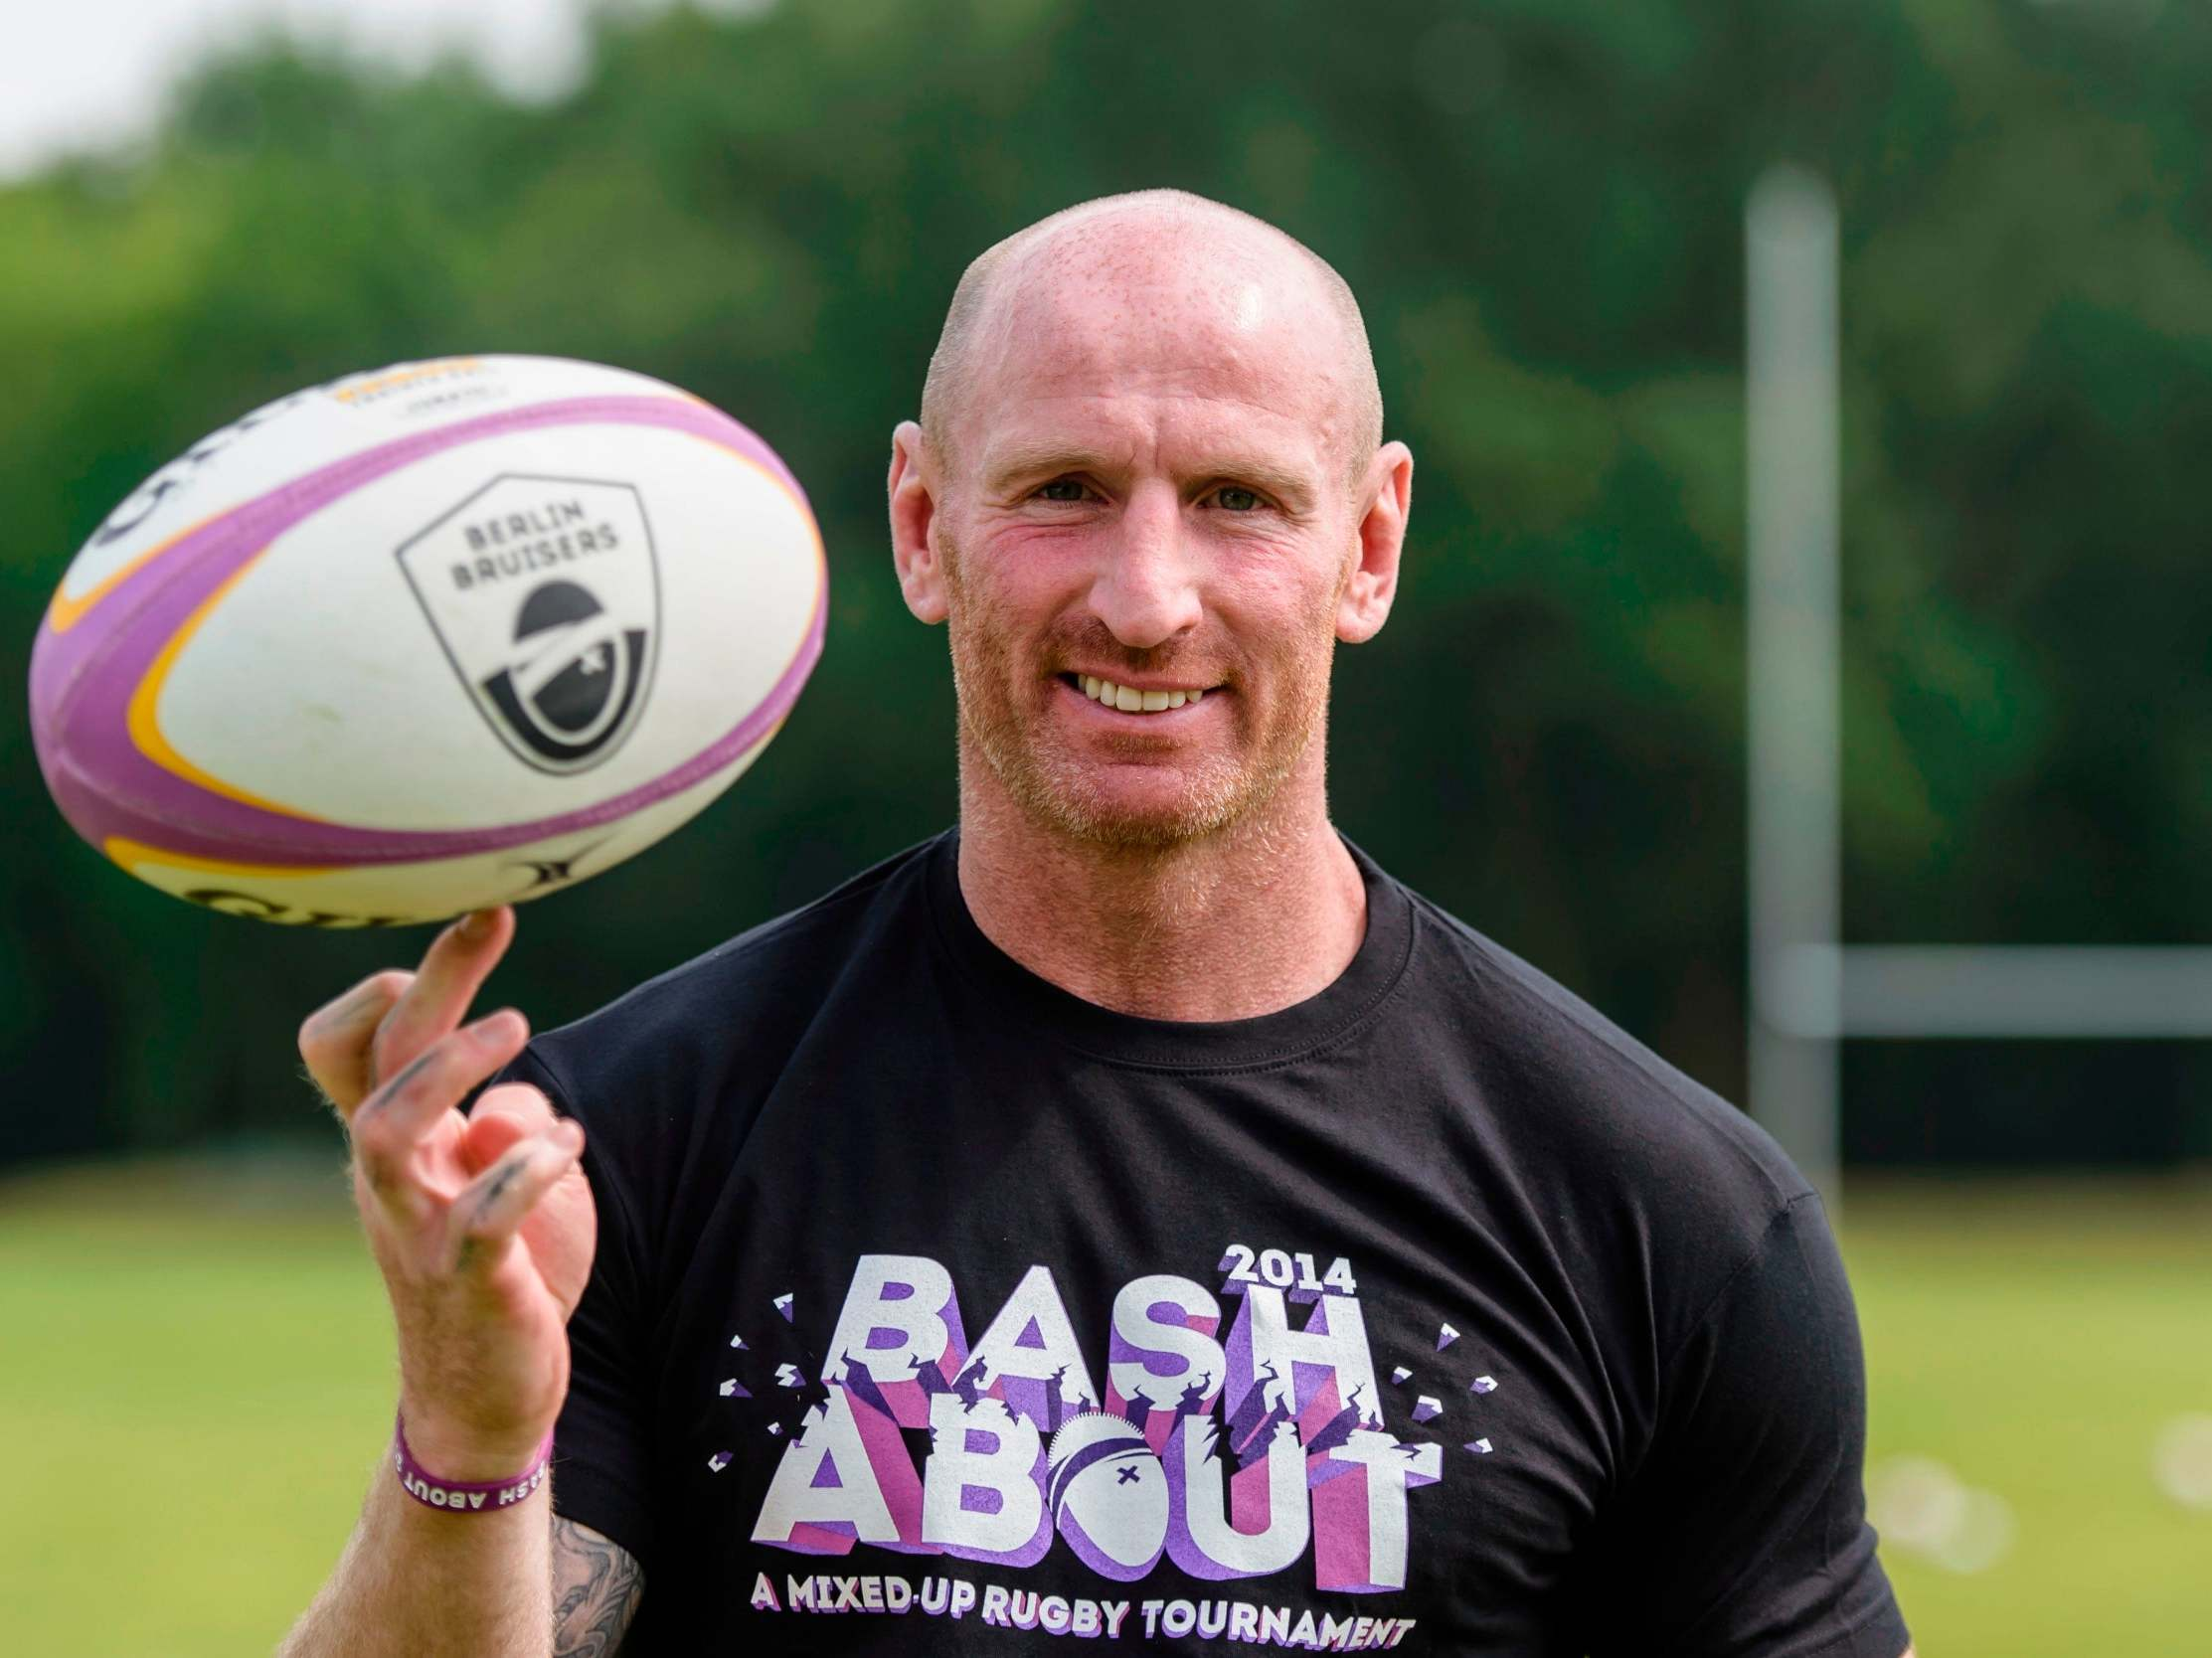 Gareth Thomas' HIV announcement leads to surge in inquiries, charity says